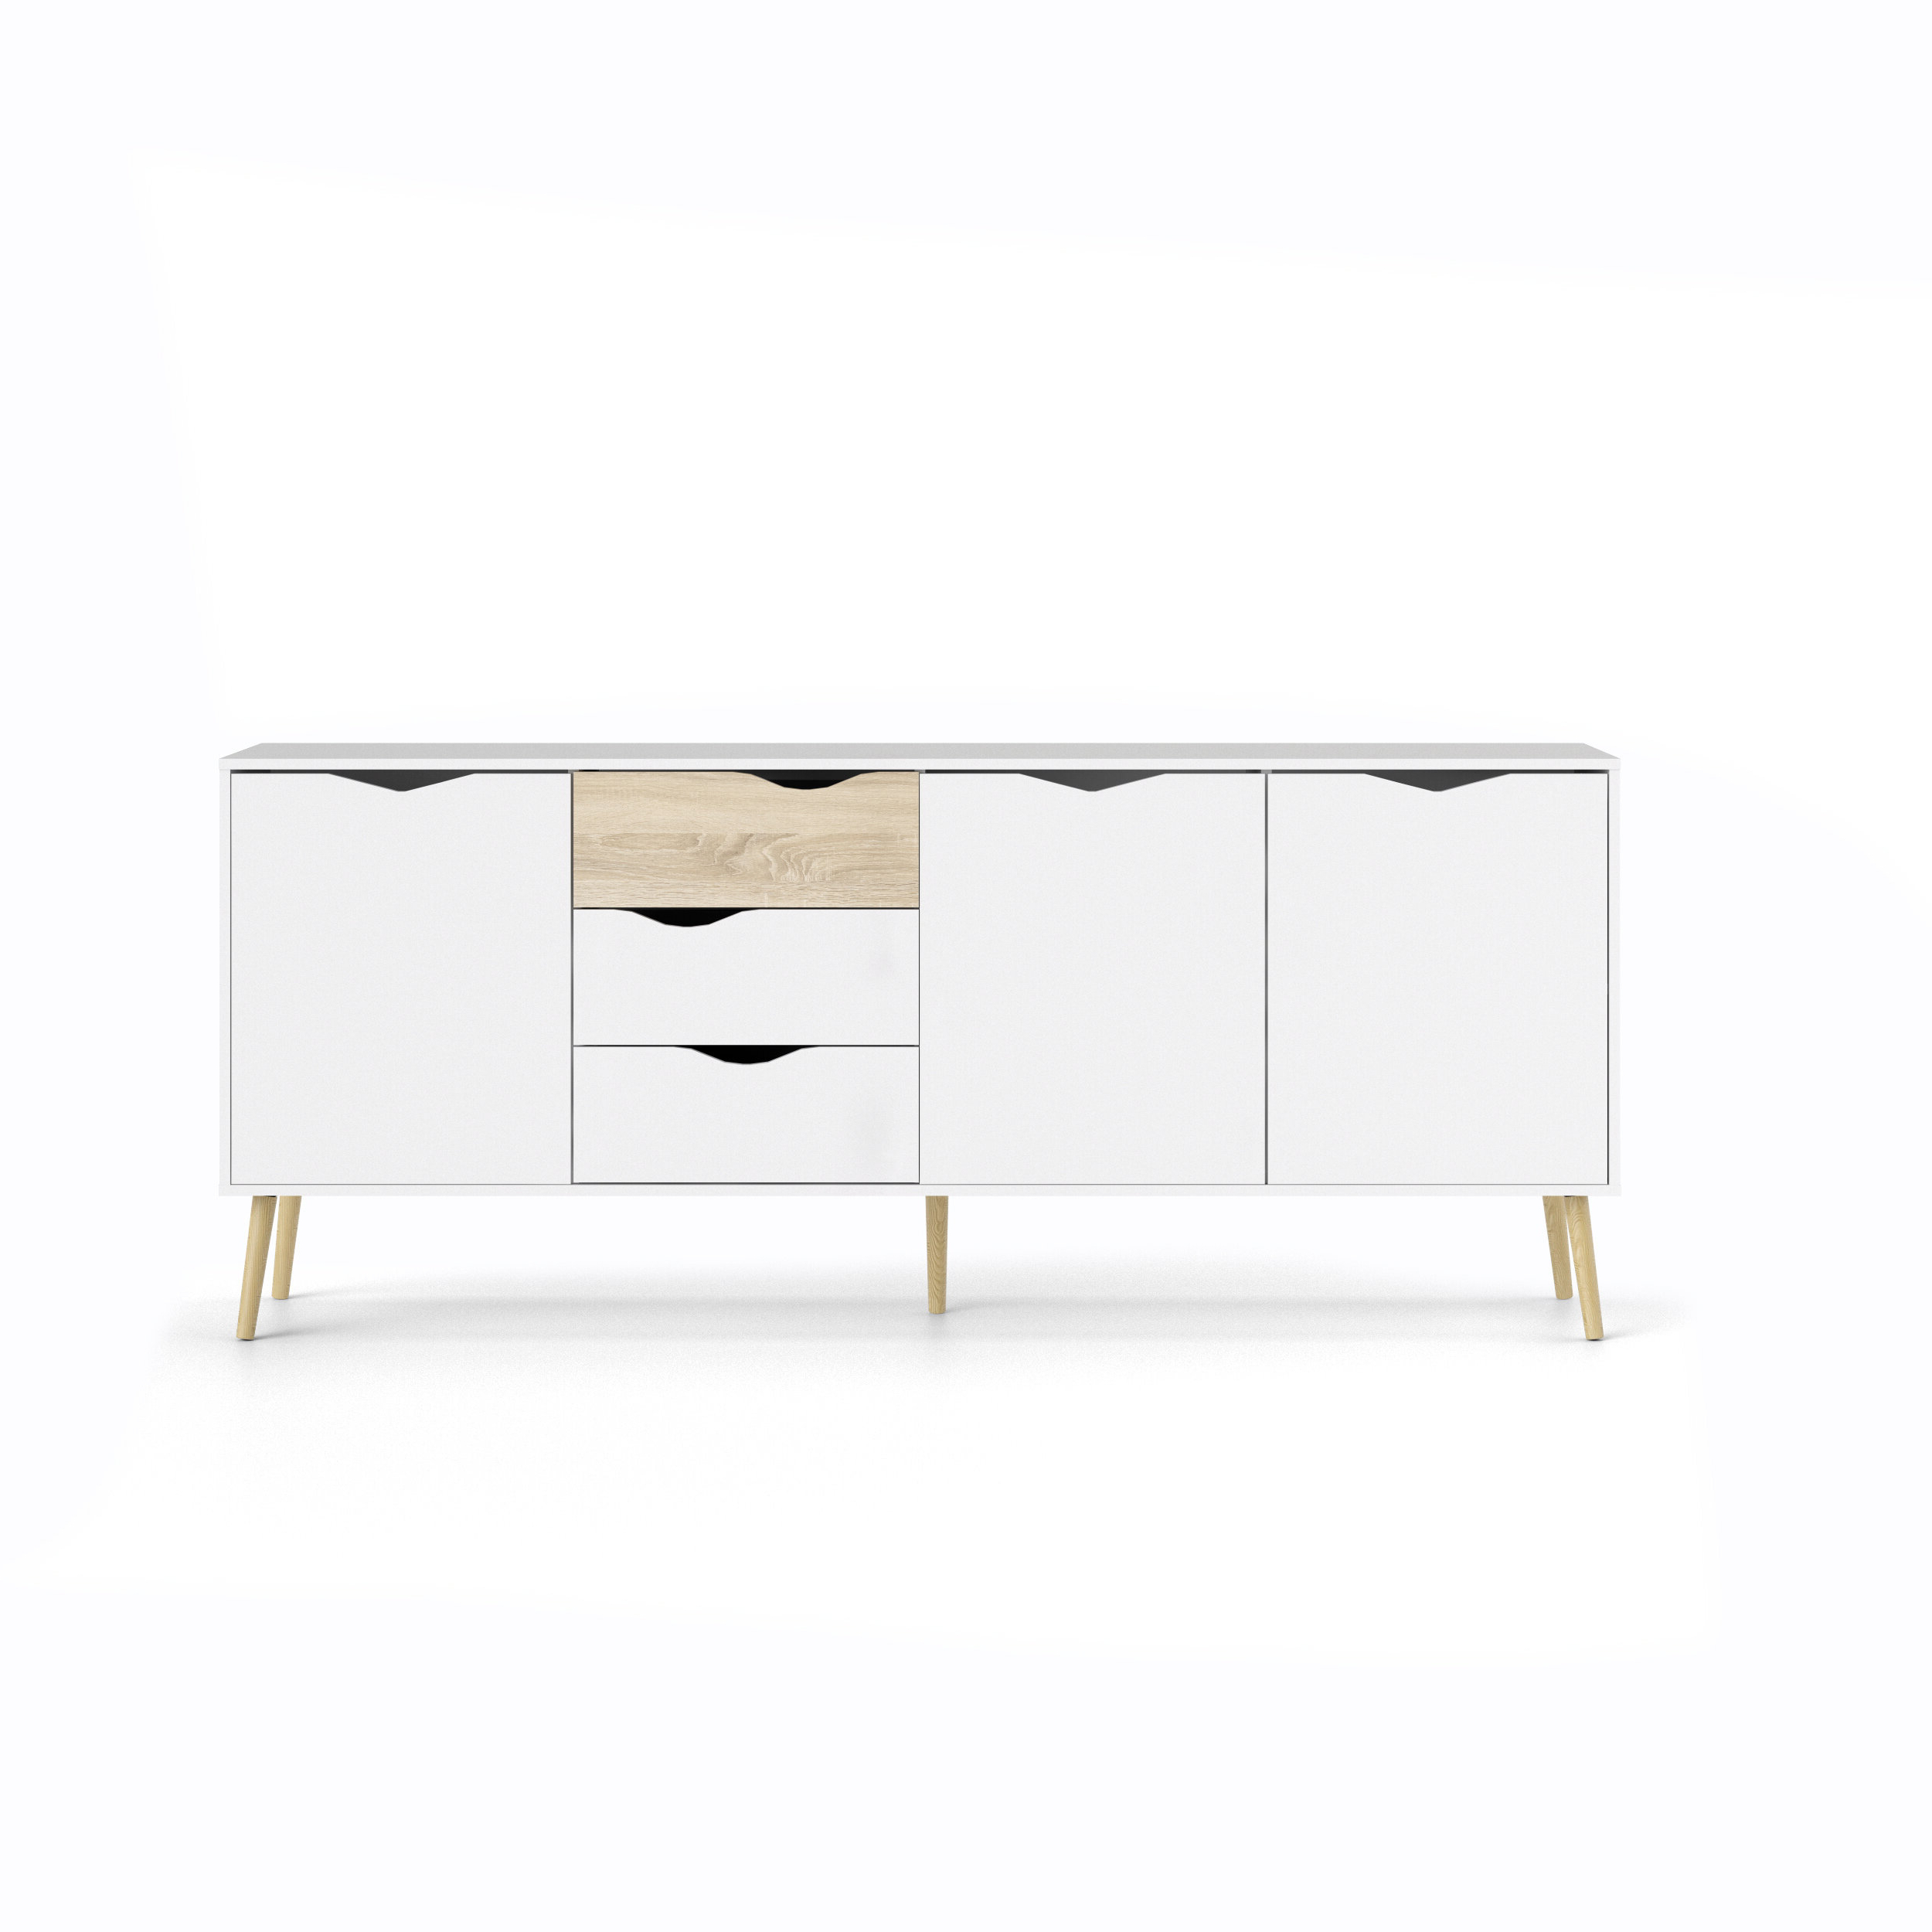 Dowler Buffet Table Throughout Most Popular Dowler 2 Drawer Sideboards (View 6 of 20)